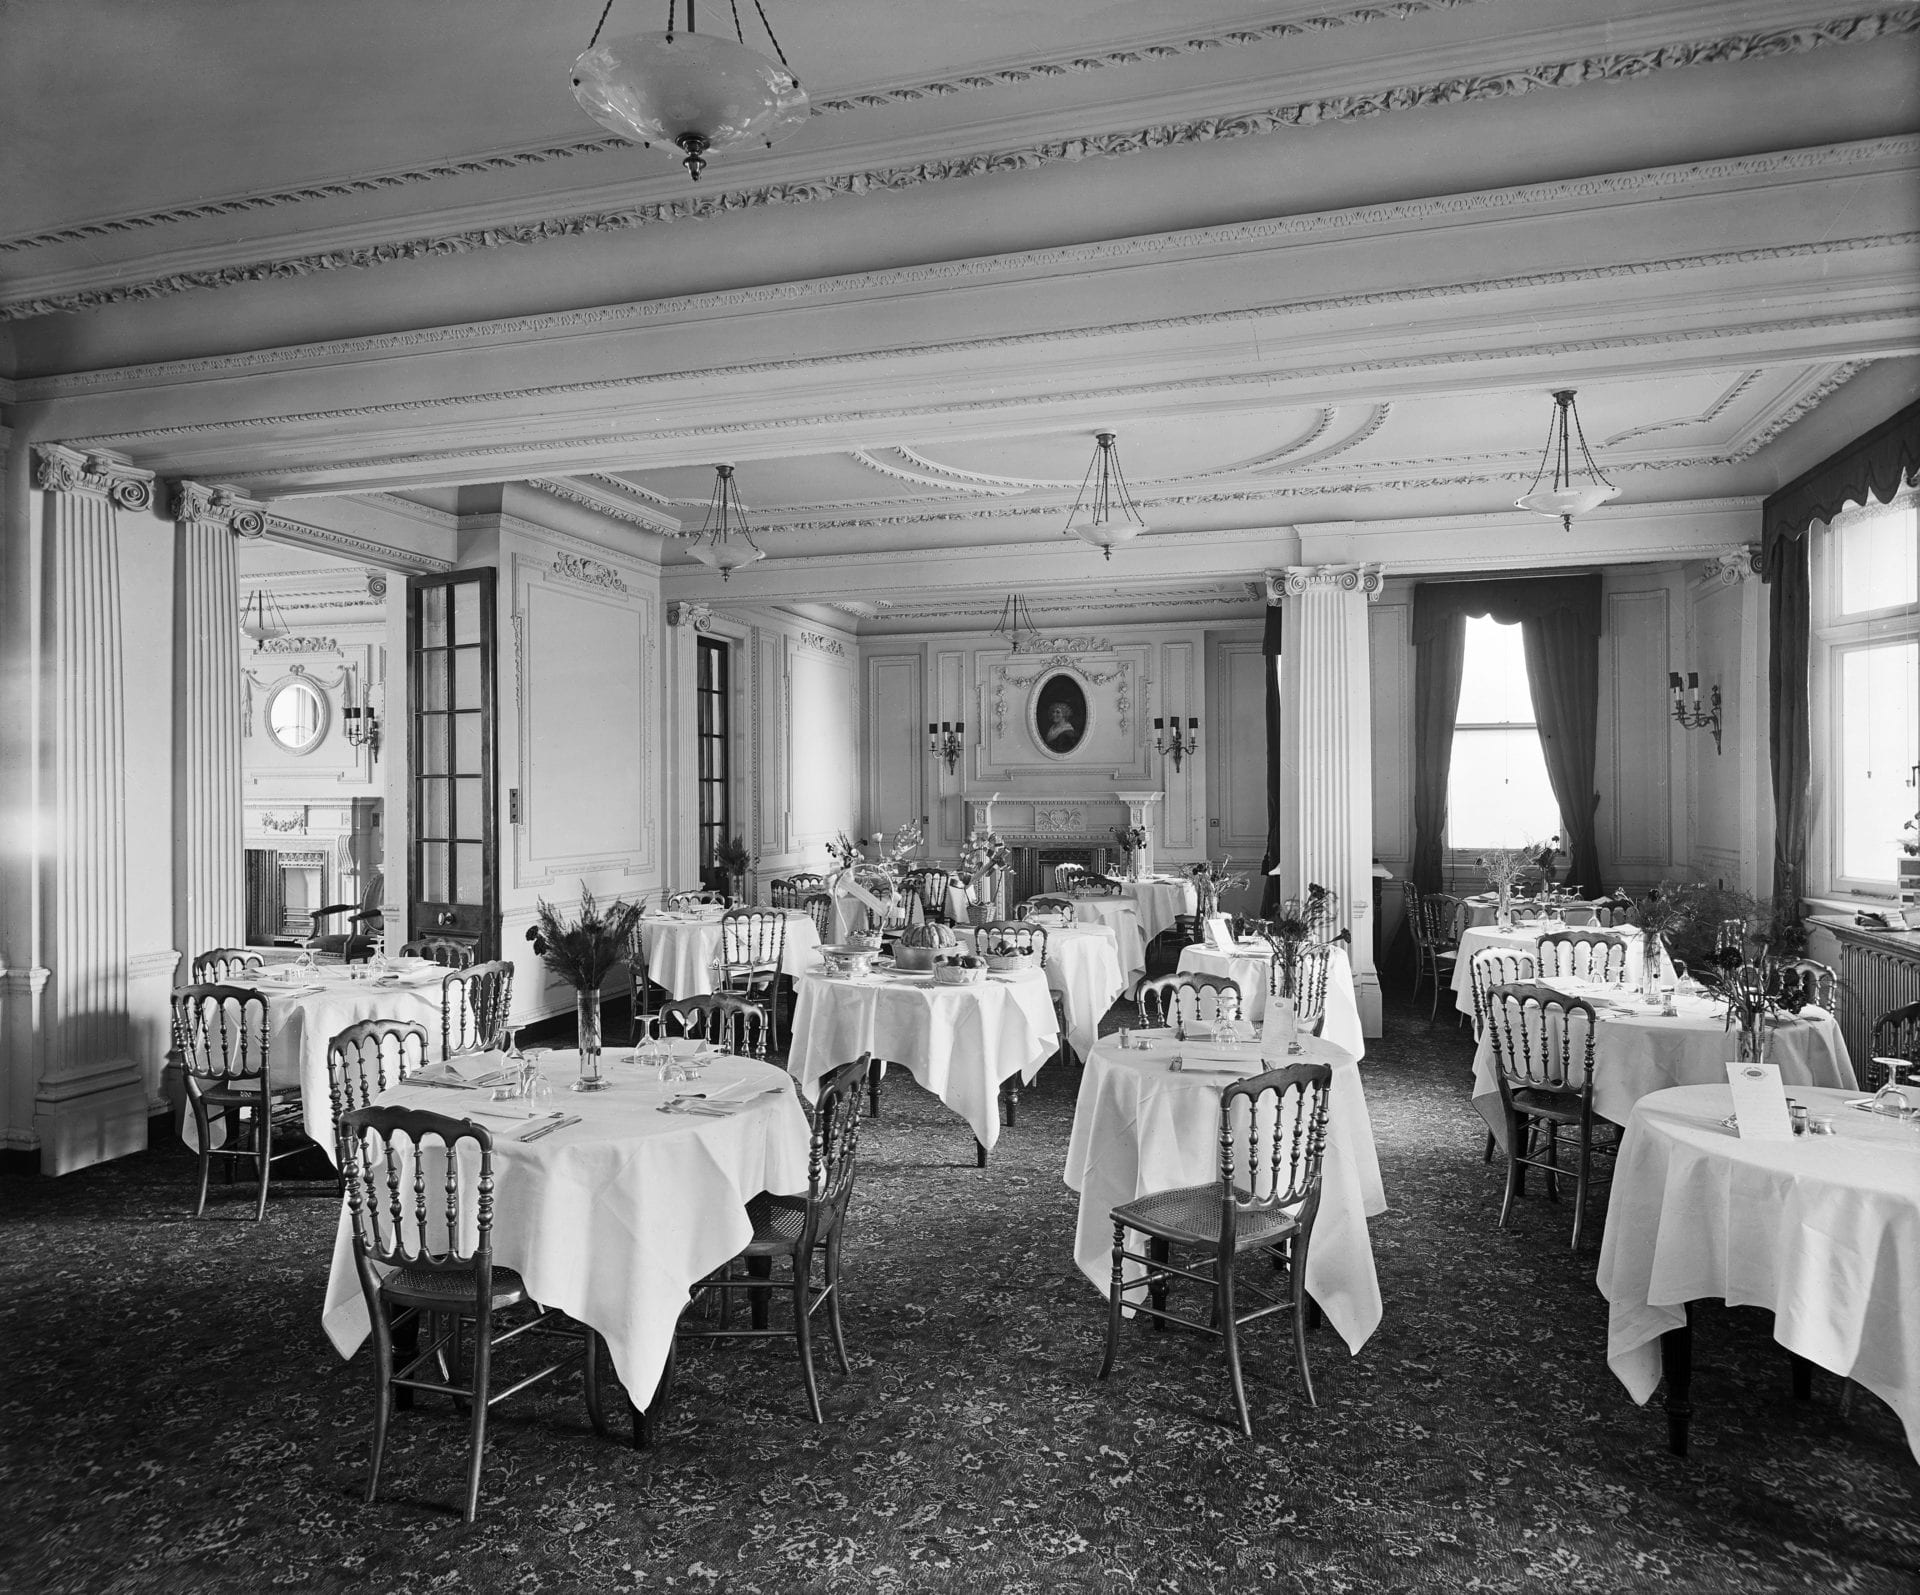 Historical dining room of the Stafford London Hotel